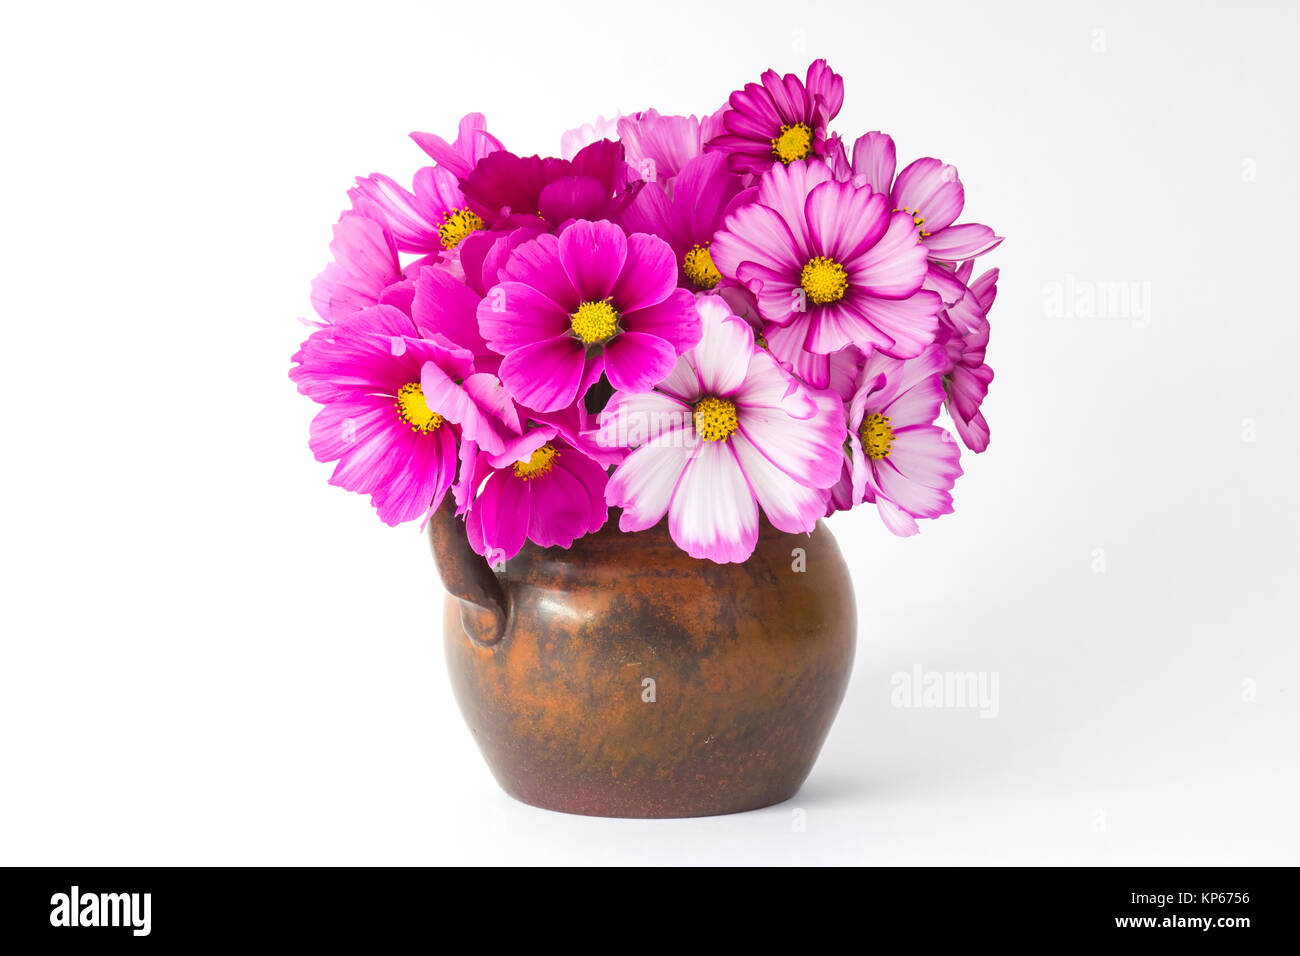 Cosmos Flowers In A Vase On White Background Stock Photo 168553090